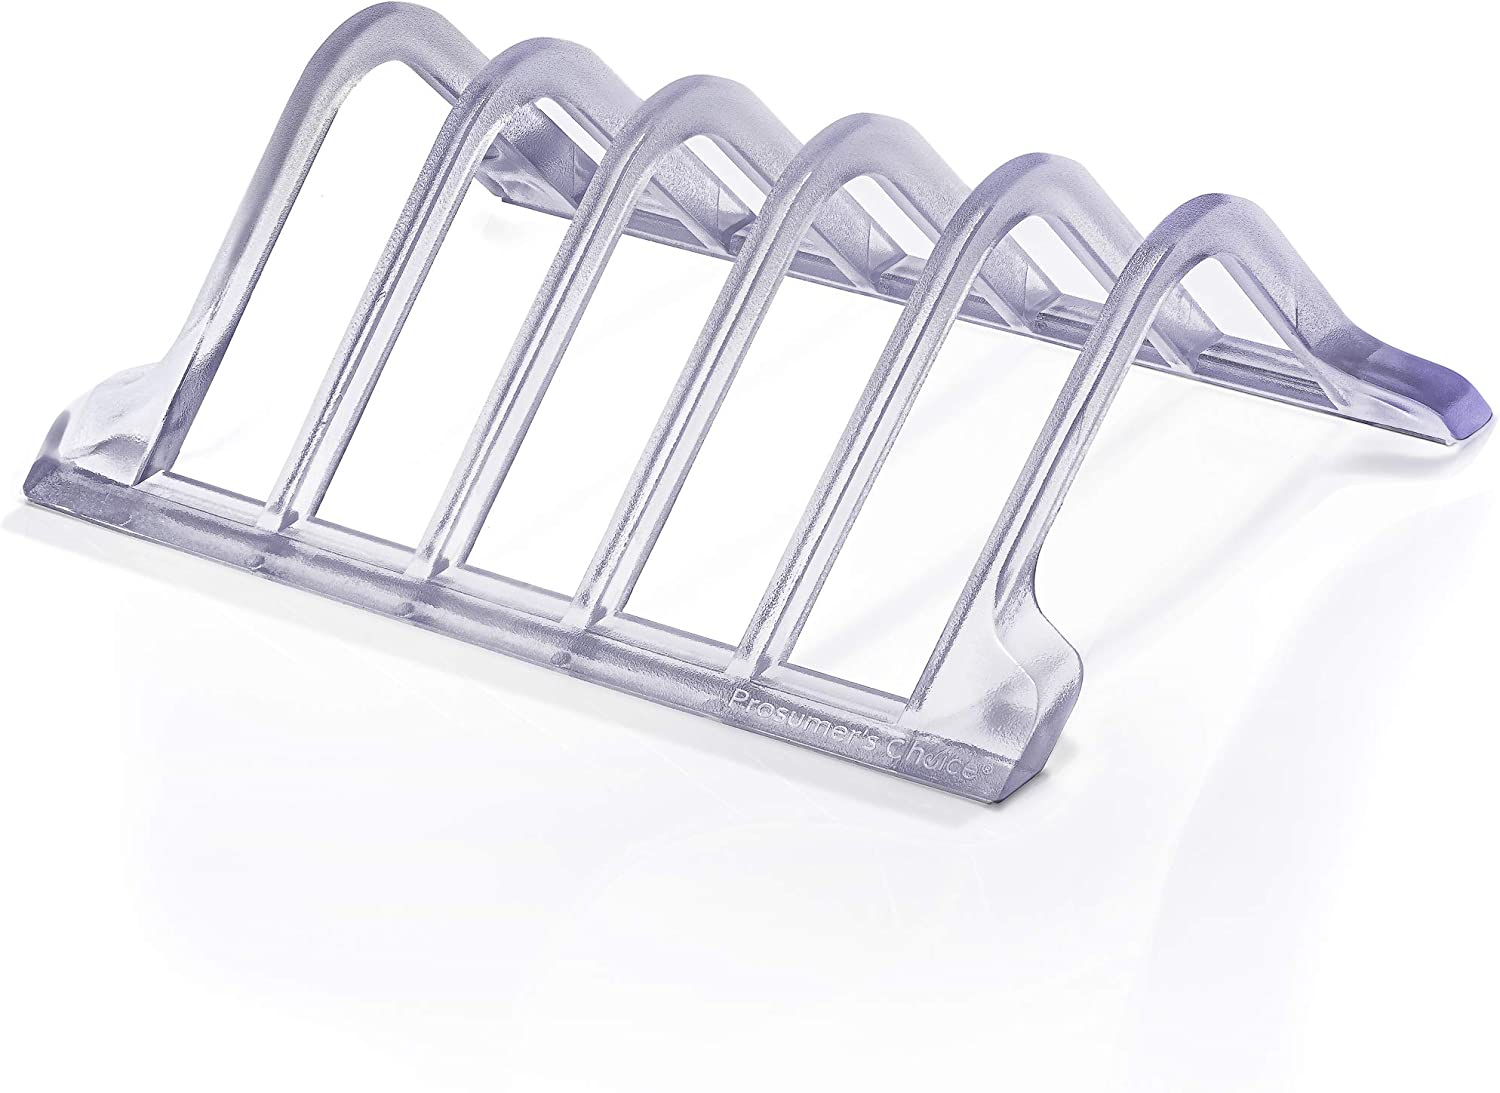 Prosumer's Choice Universal 5 Tablet and Smartphone Charging Organizer Rack Desktop Stand Holder - Clear